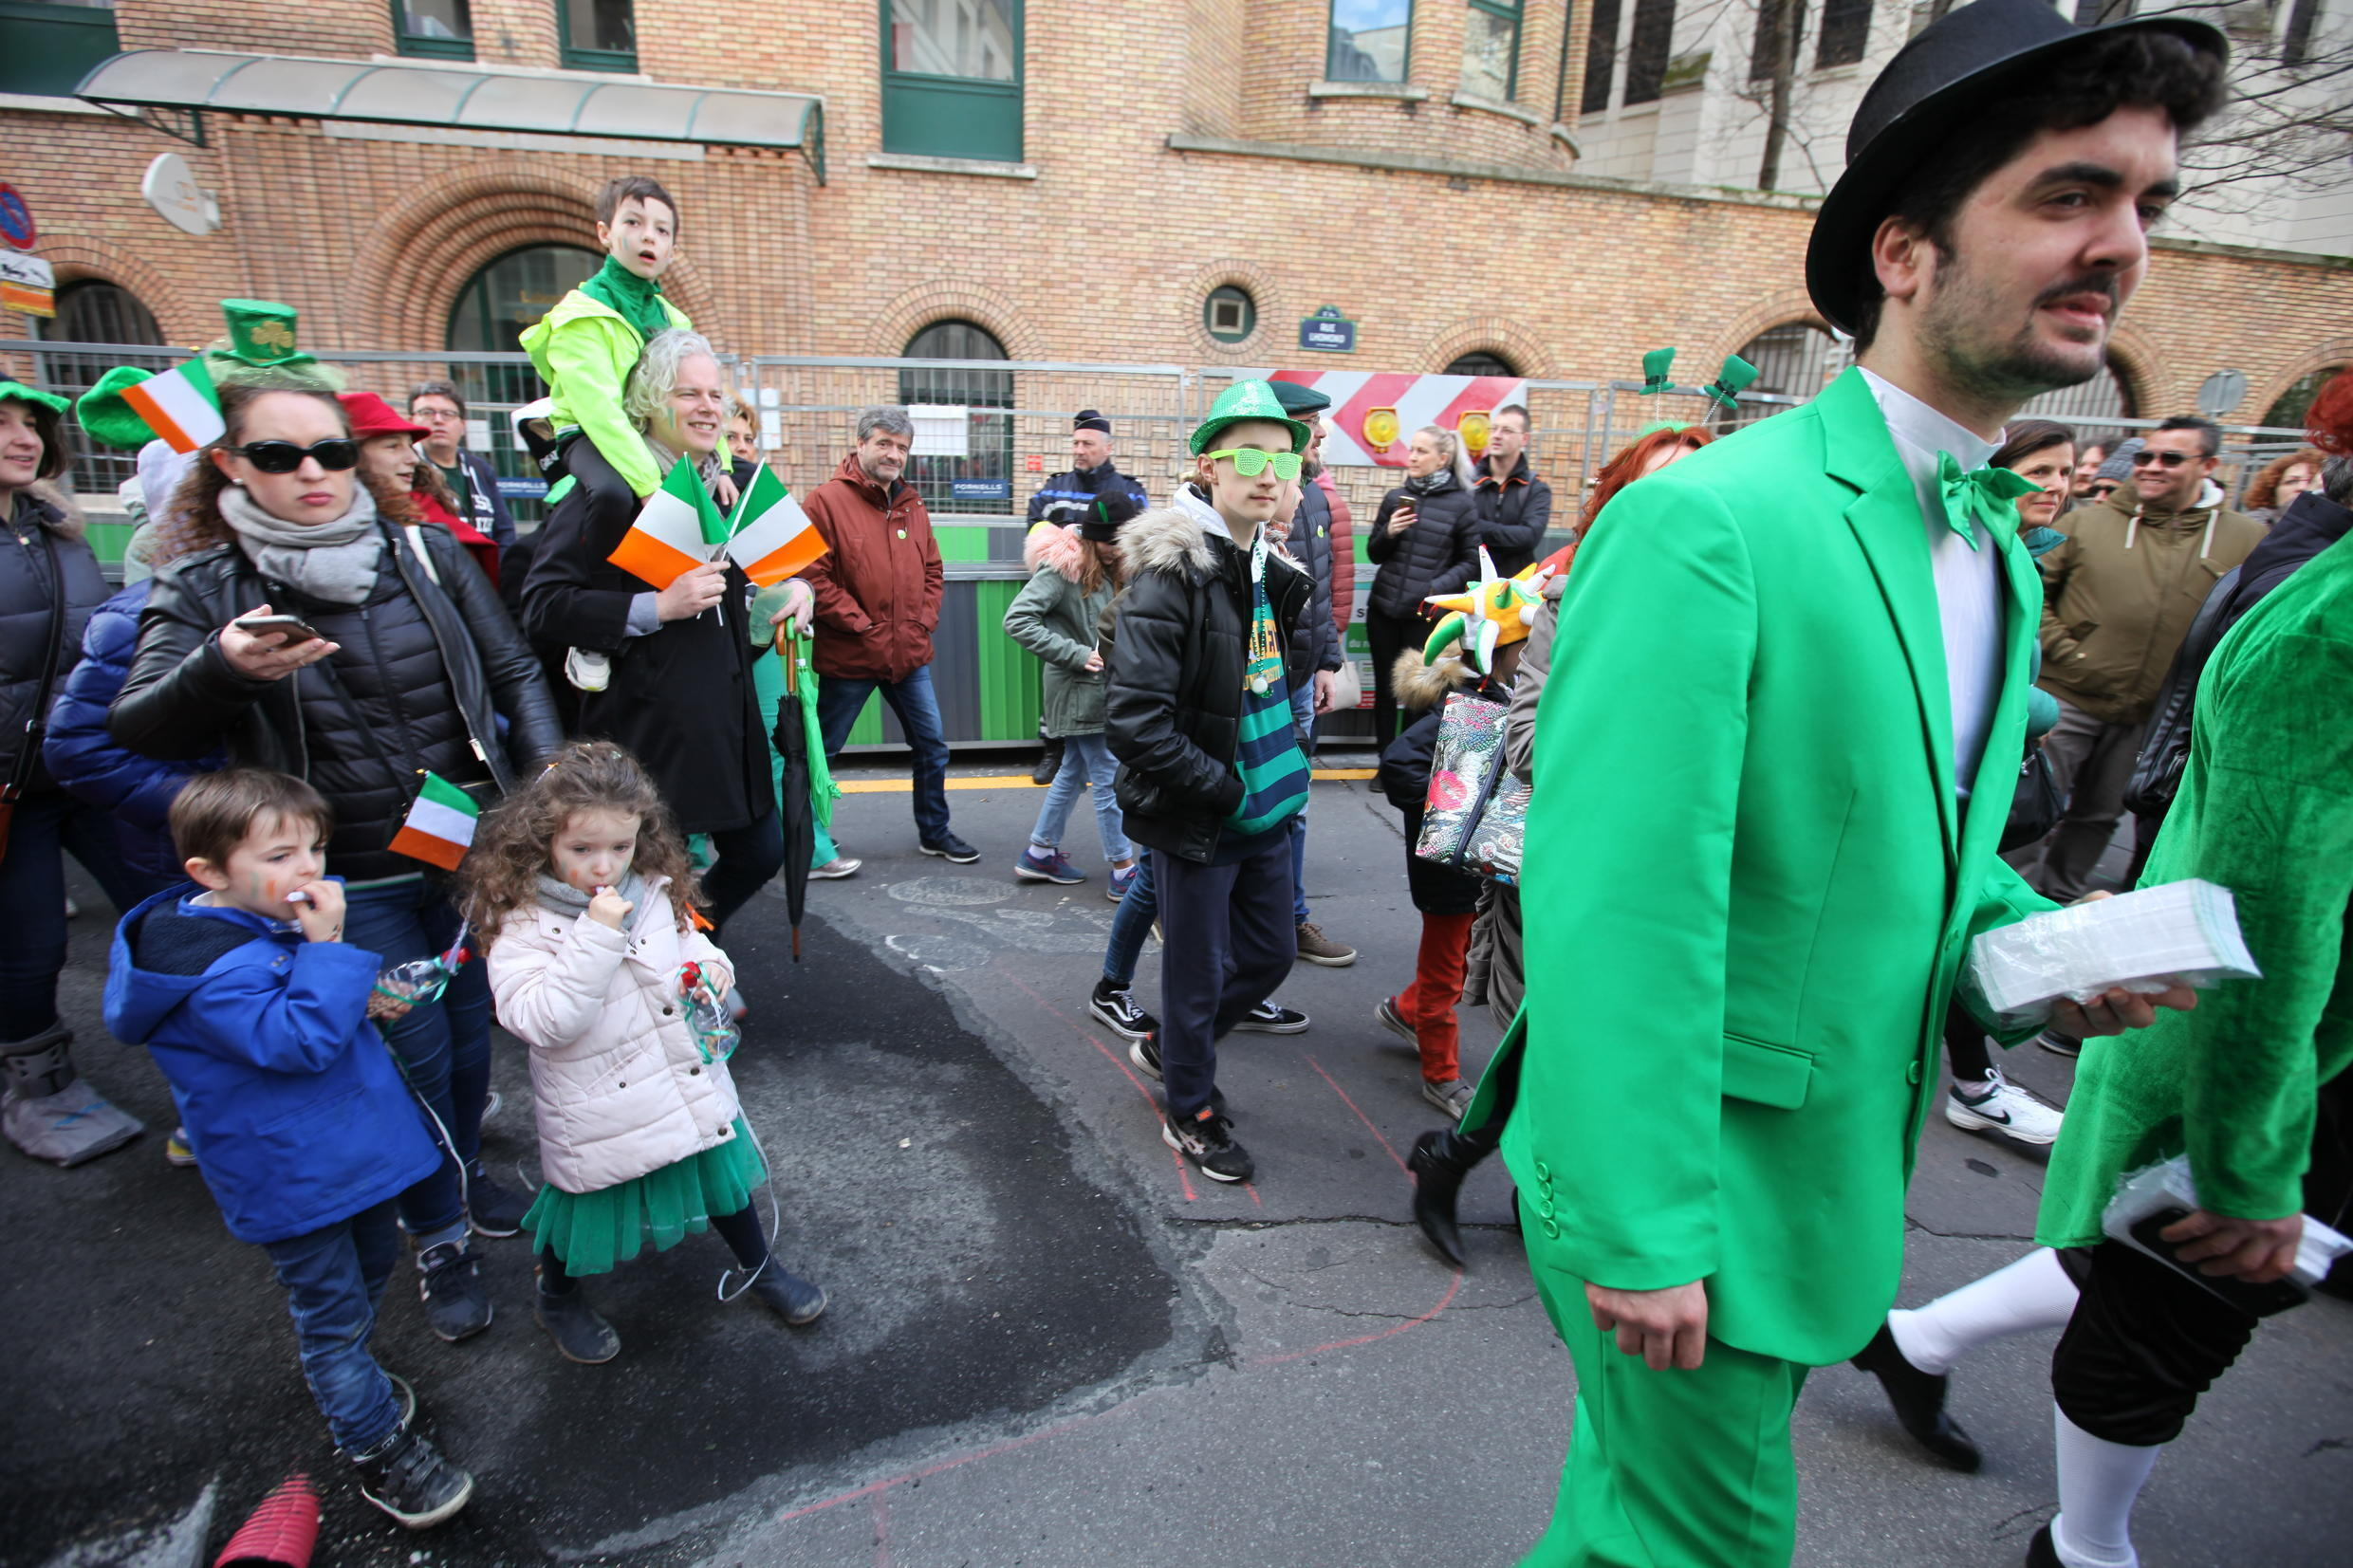 Young and old, dressed up in green, carry the Irish flag.